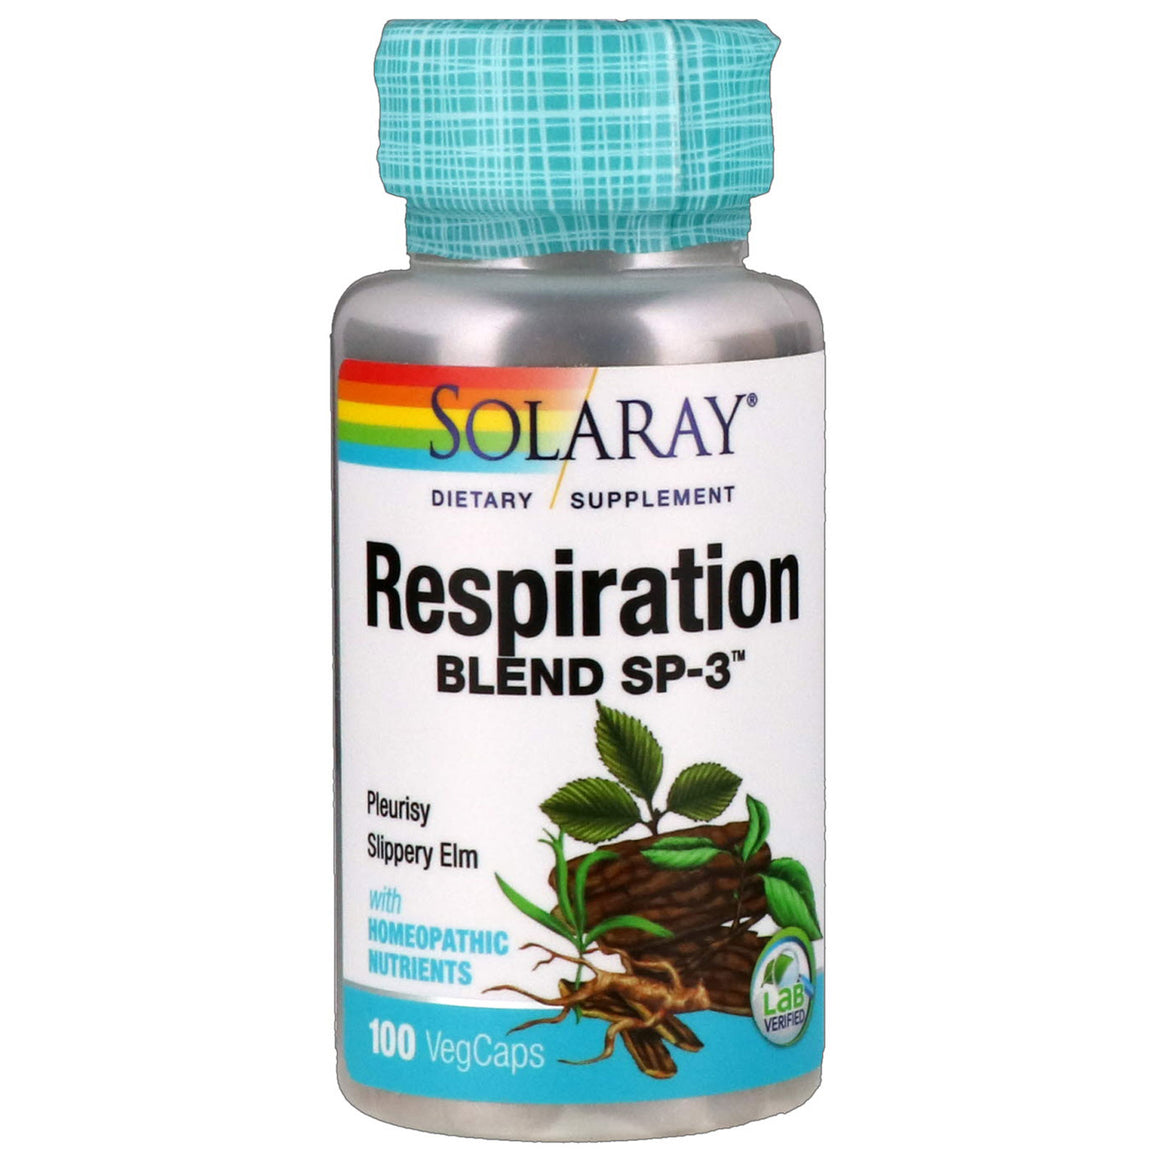 Solaray Respiration Blend